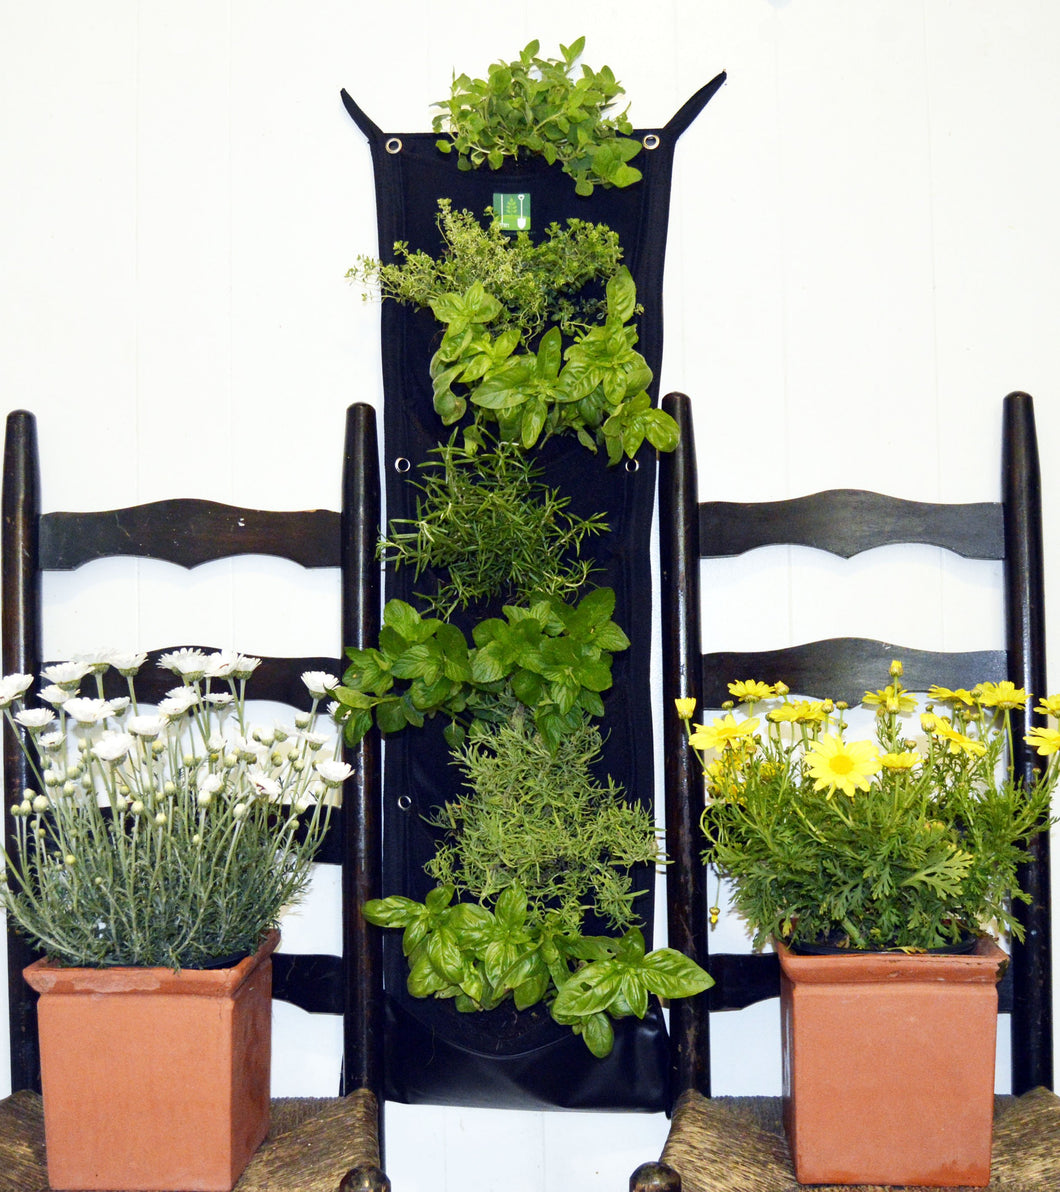 7 Pocket INDOOR WATERPROOF Vertical Planter - CalicoMarket